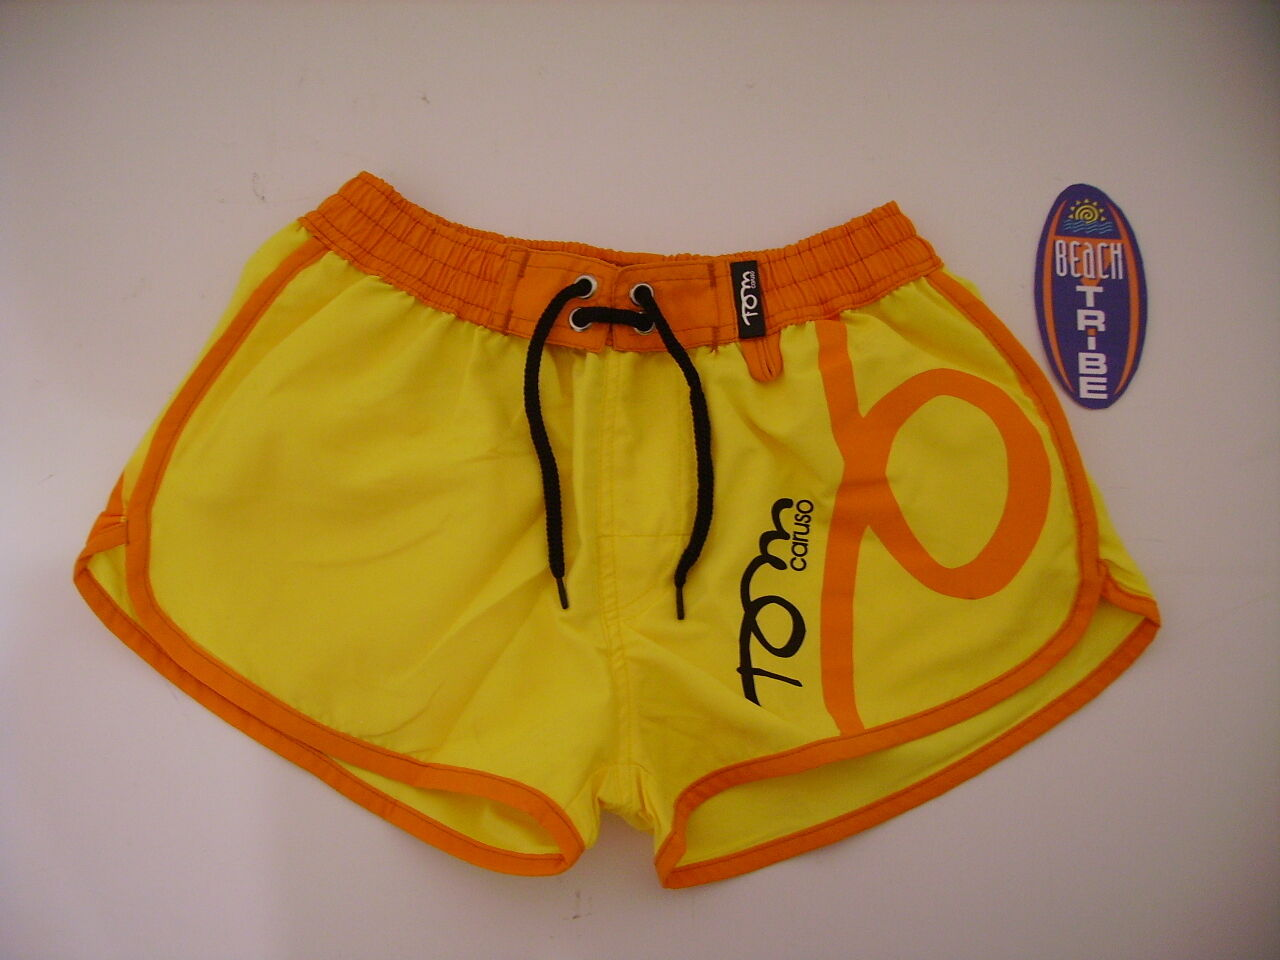 SHORTS BEACH TENNIS FRAU FRAU FRAU TOM CARUSO GELB Orange S c04409